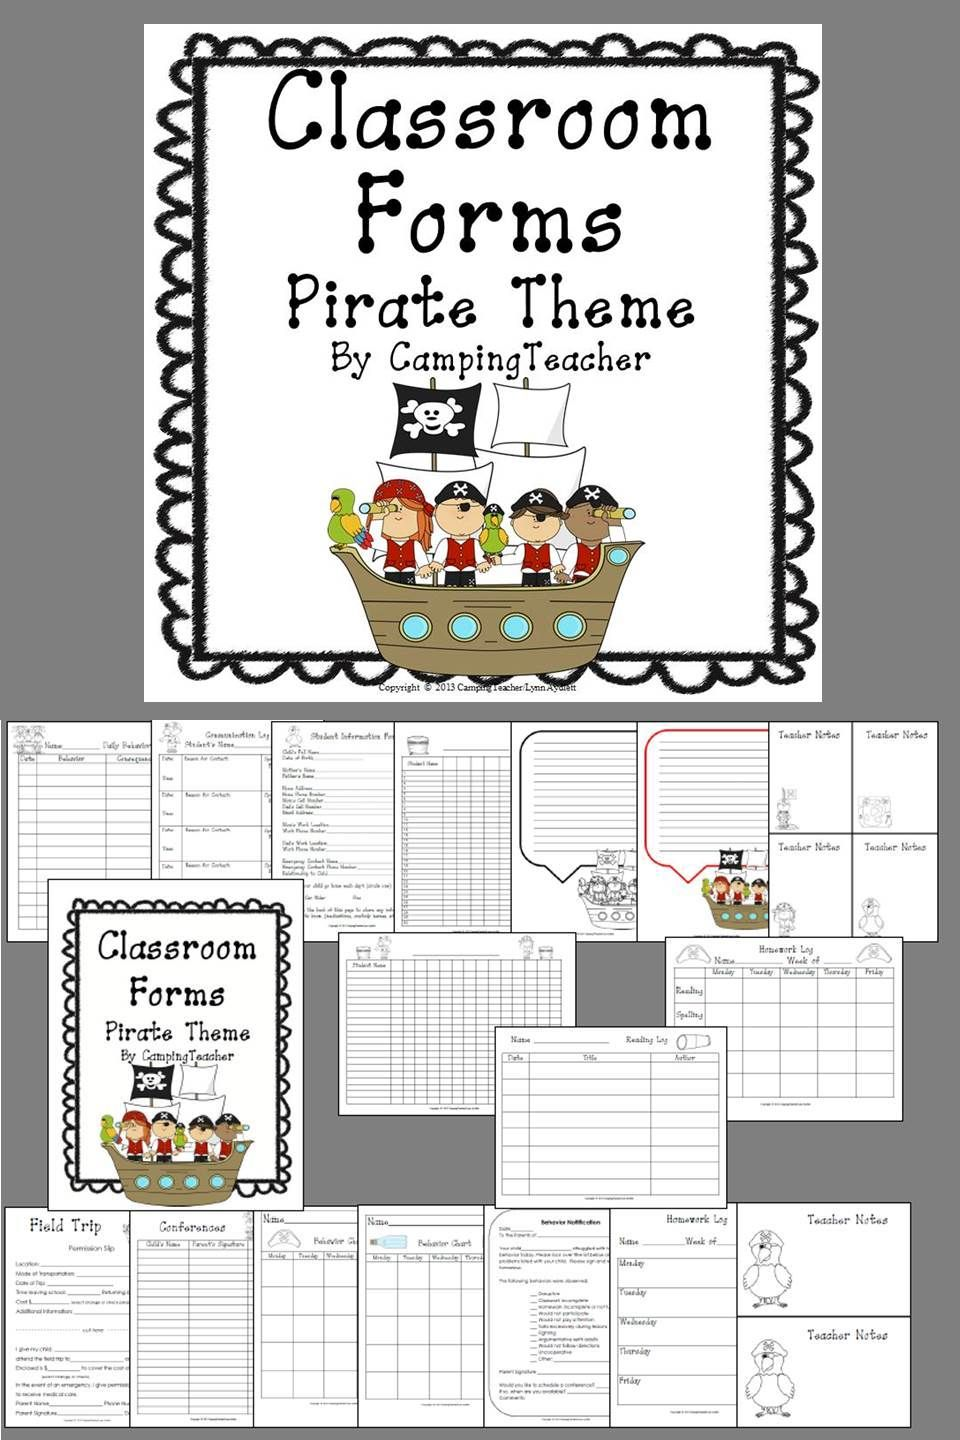 My Most Popular Classroom Forms Pirate Theme Many Teachers Are Decorating Their Classrooms With The E Pirate Theme Classroom Pirate Classroom Classroom Forms Most popular classroom pictures